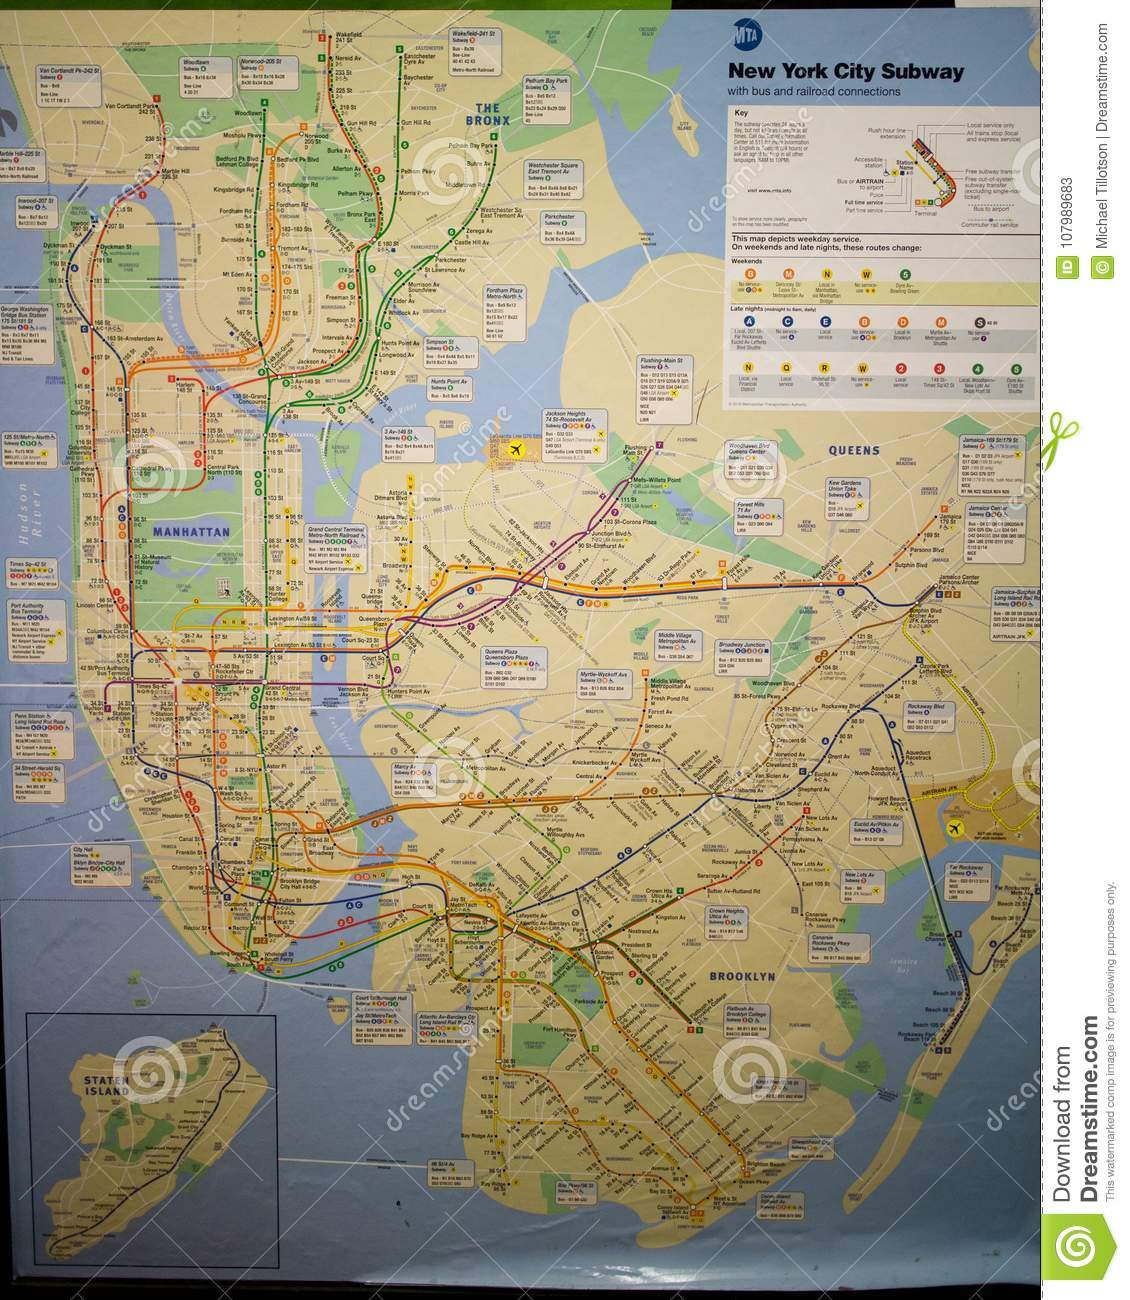 Map Of New York City Subway System.Map Of New York City Subway Editorial Stock Photo Image Of Bronx